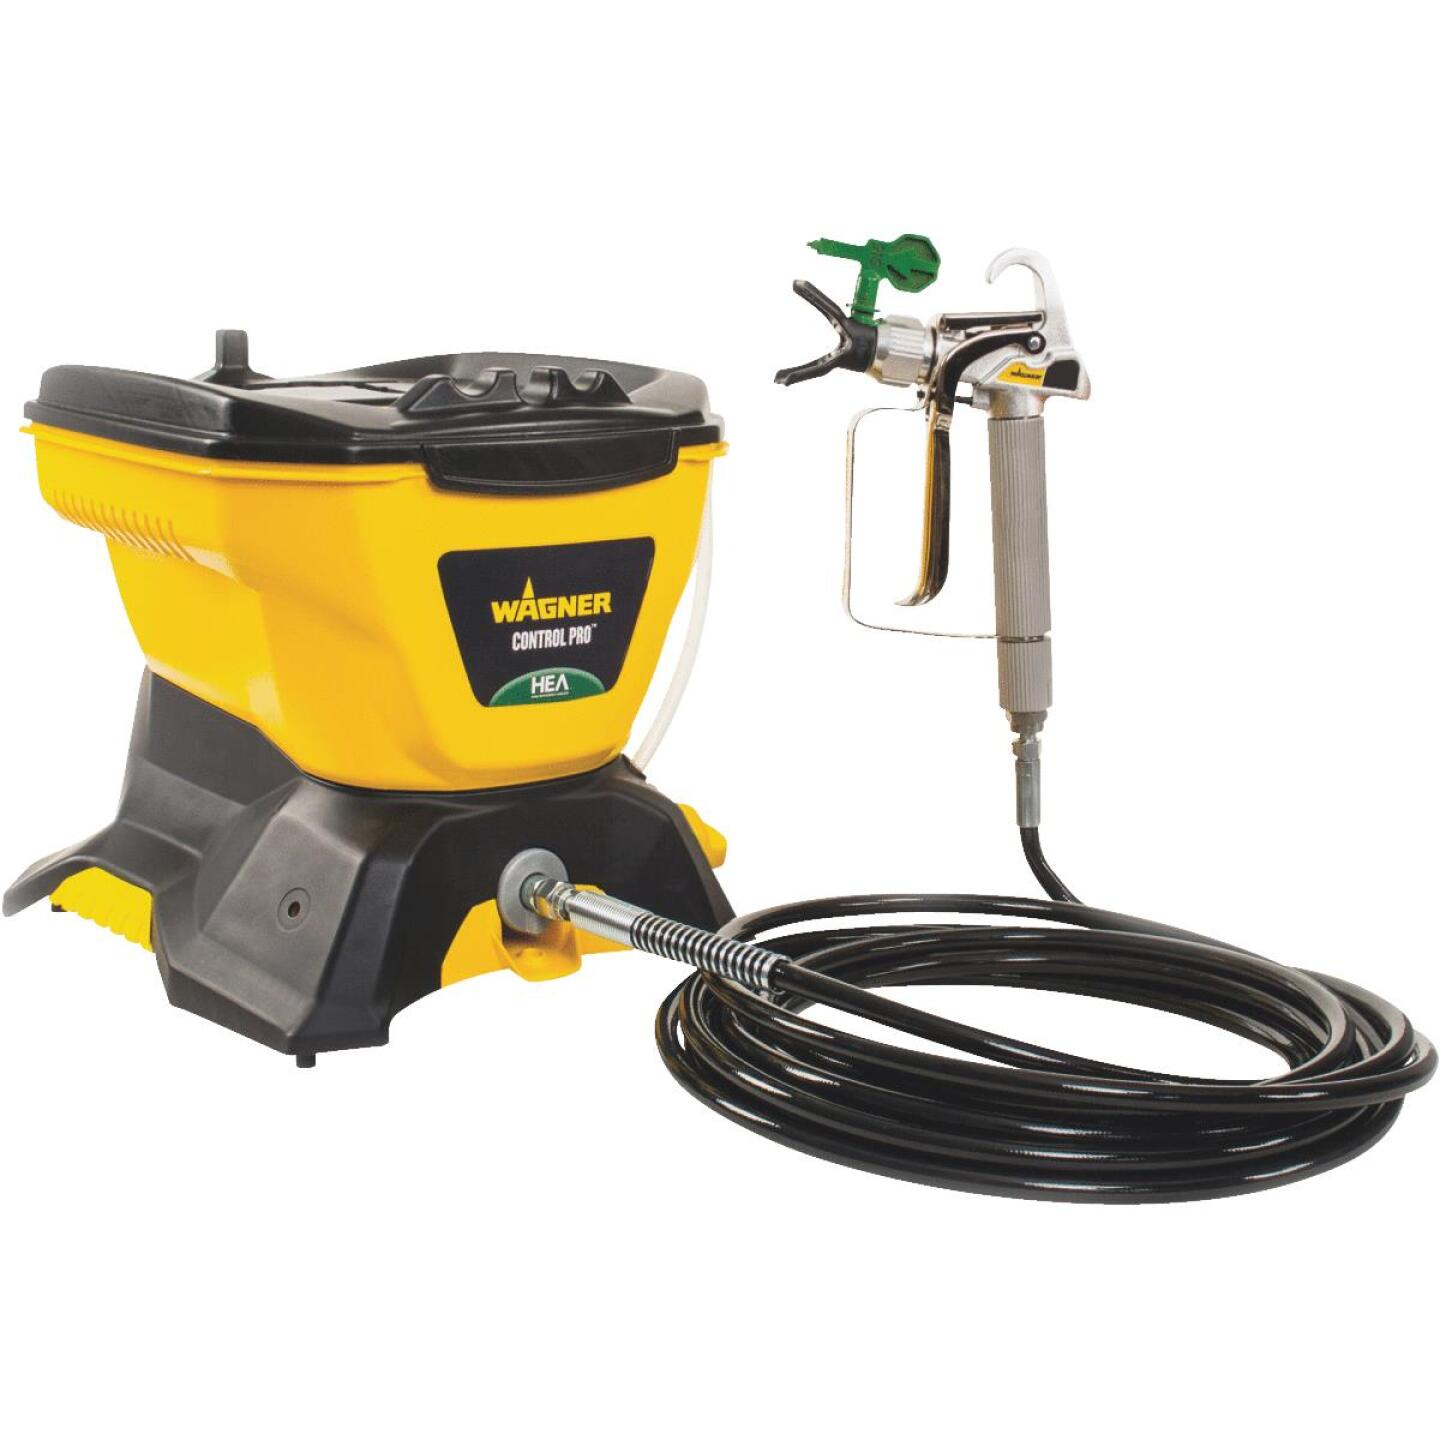 Wagner Control Pro 130 High Efficiency Airless Paint Sprayer Image 1